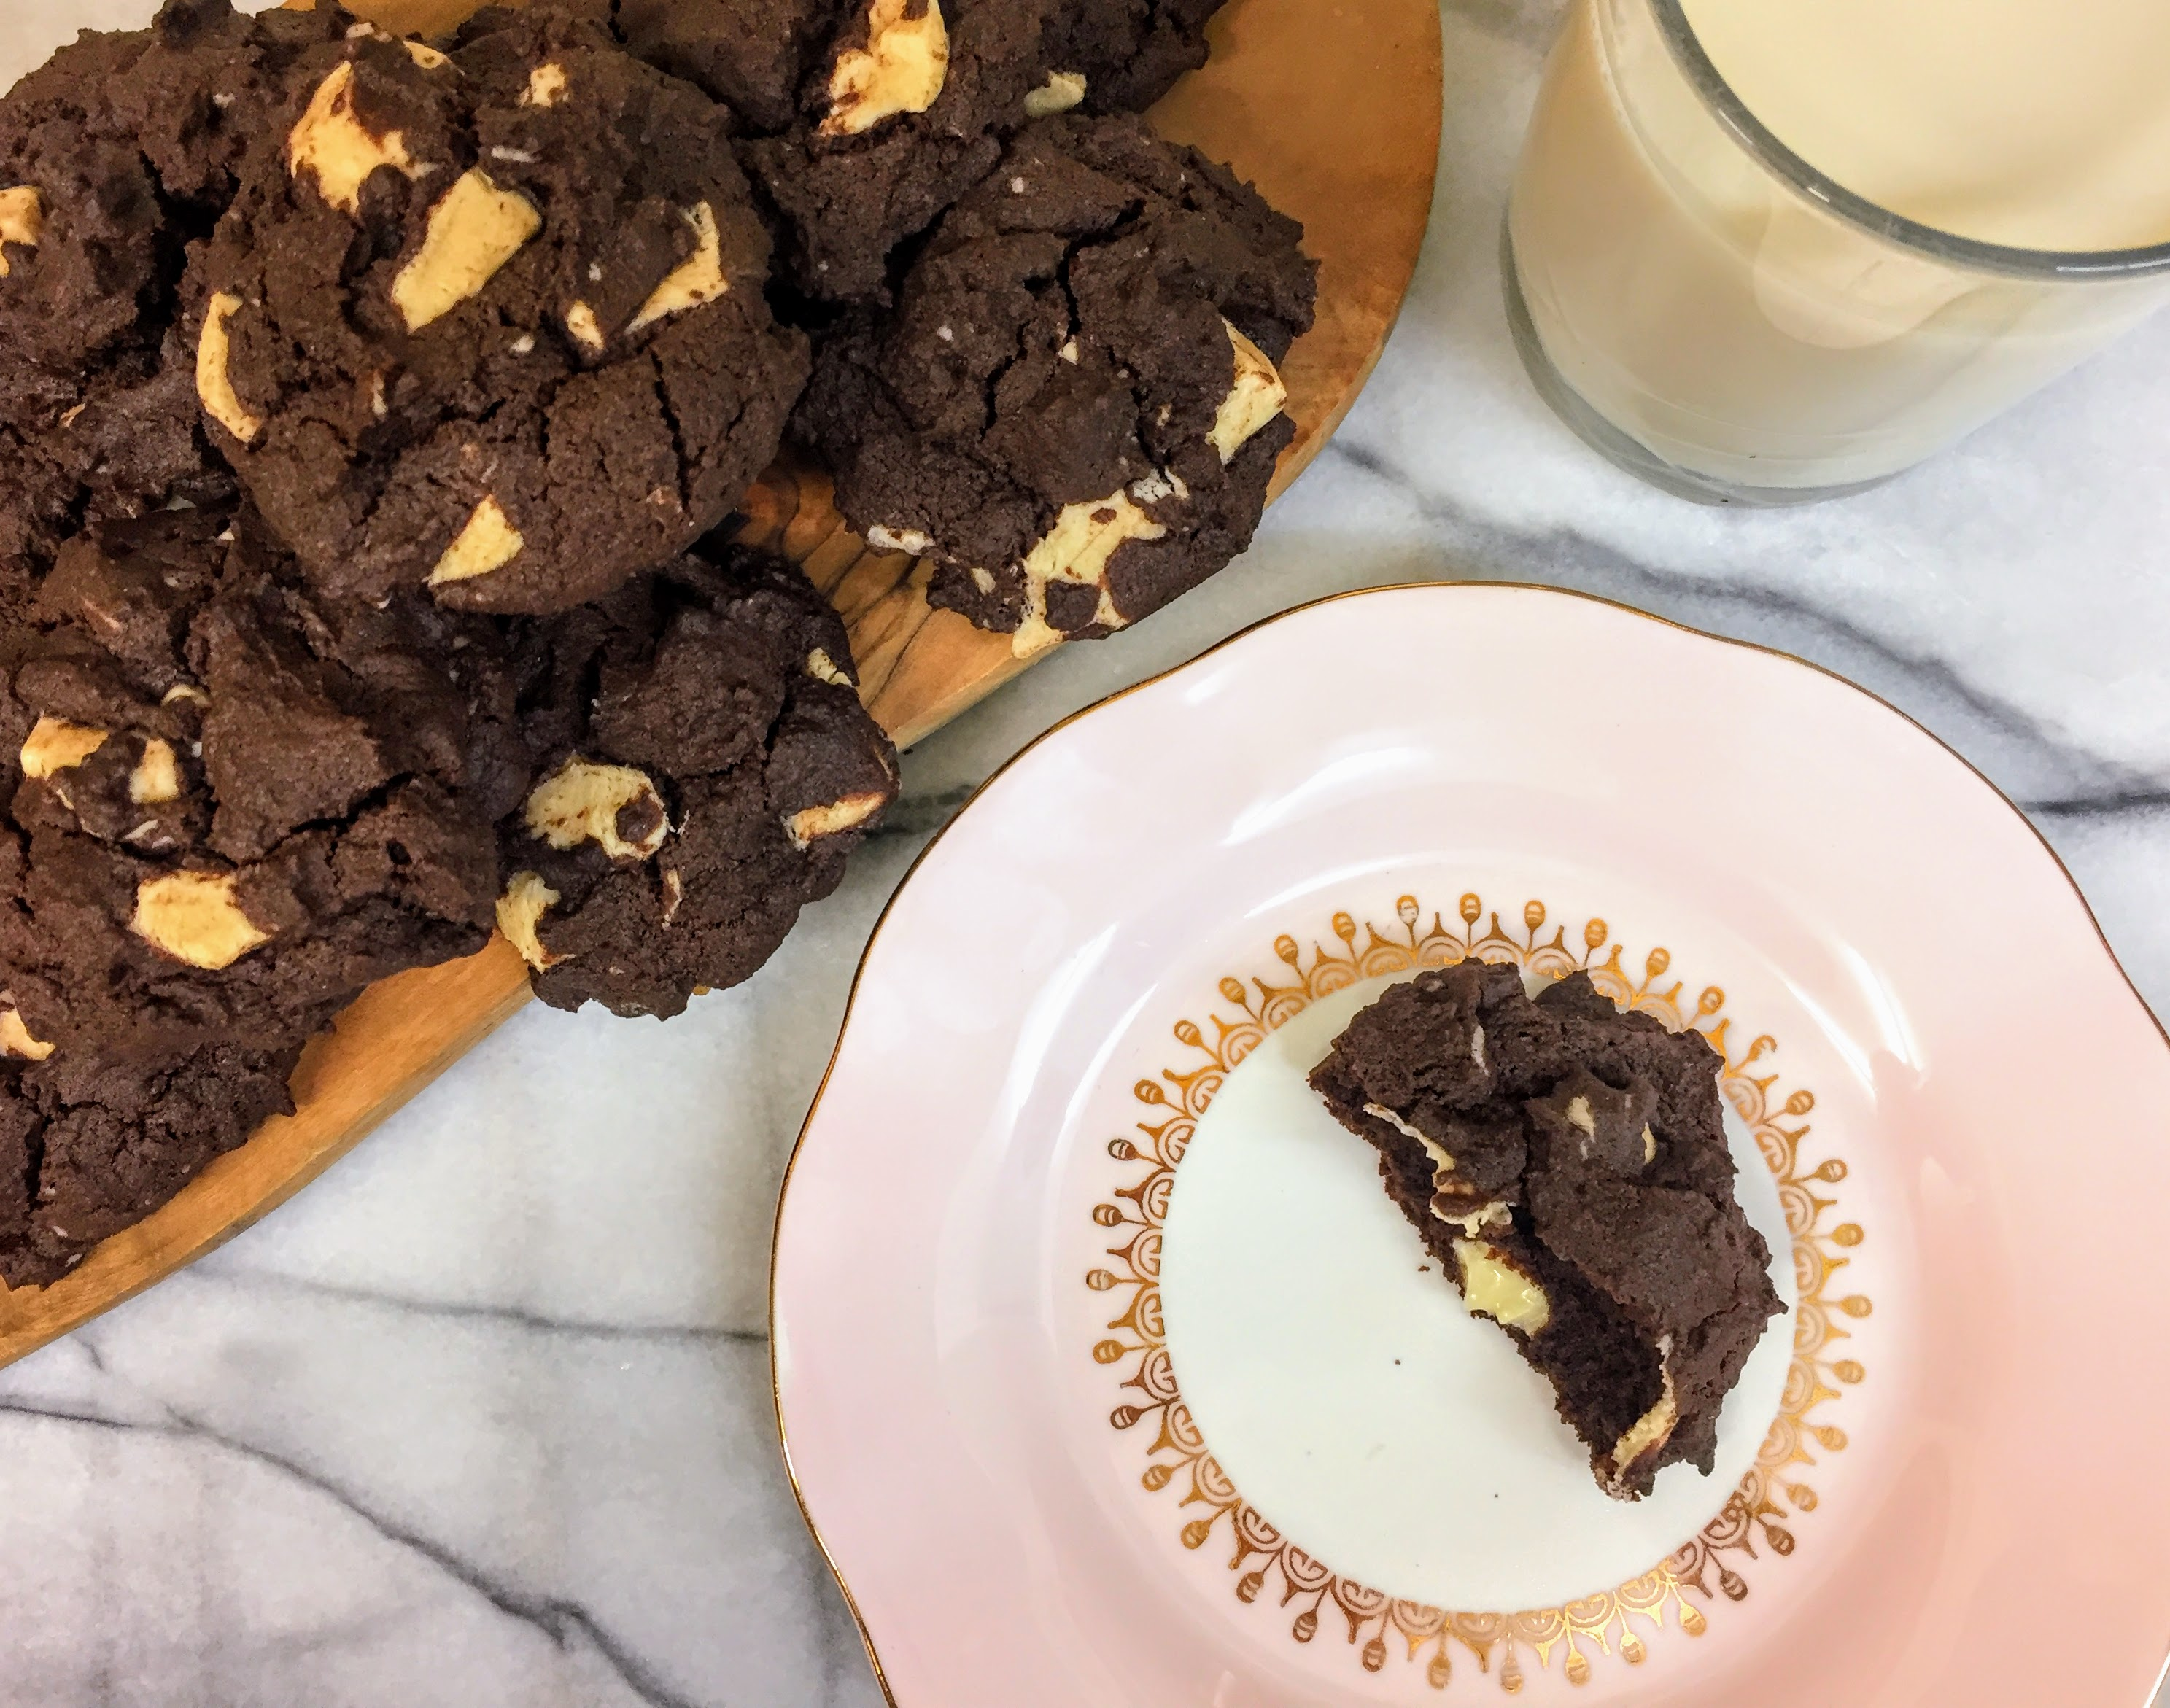 Half a double chocolate brownie cookie on a pink plate, with the remaining cookies in a pile to the left, next to a glass of non-dairy milk.